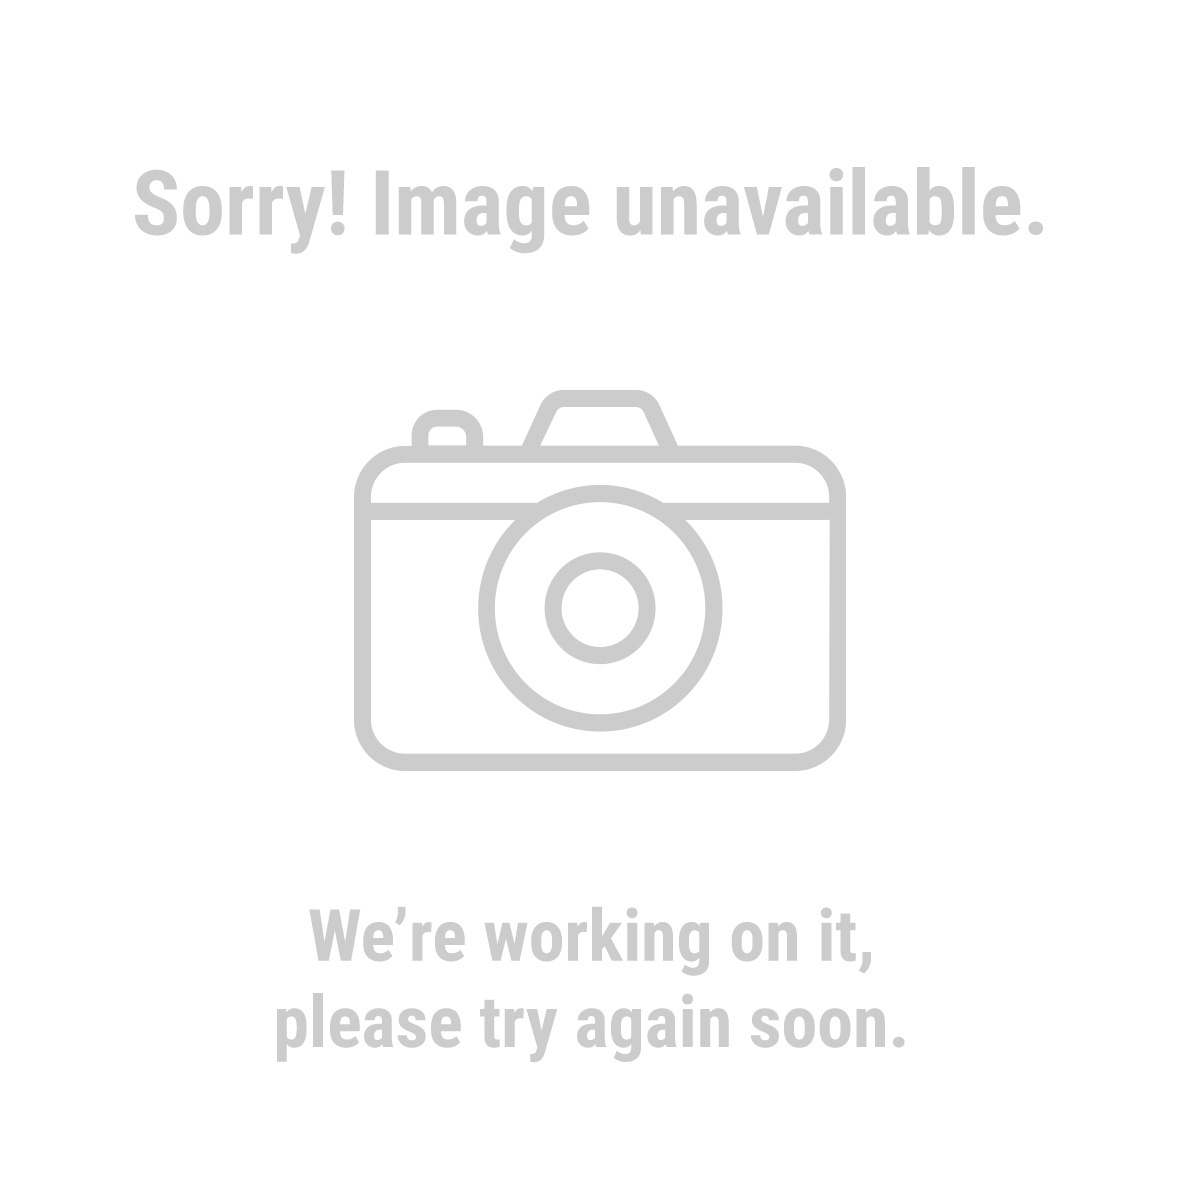 Haul-Master 98472 1 in. x 8 ft. Camouflage Ratcheting Tie Downs 4 Pc